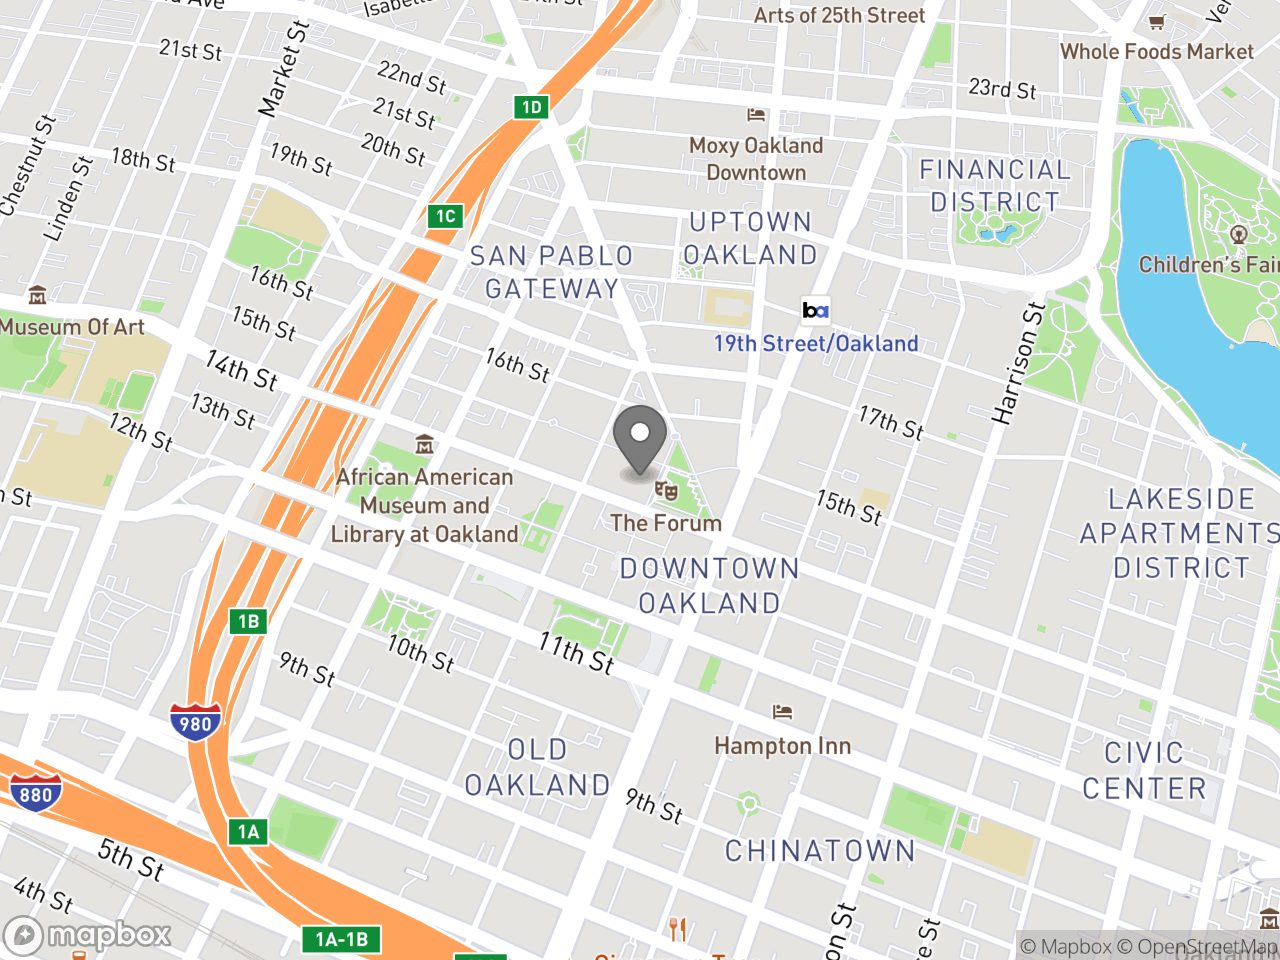 Map location for Bicyclist and Pedestrian Advisory Commission (BPAC) Meeting, Mar 16, 2017, located at 1 Frank H Ogawa Plaza in Oakland, CA 94612